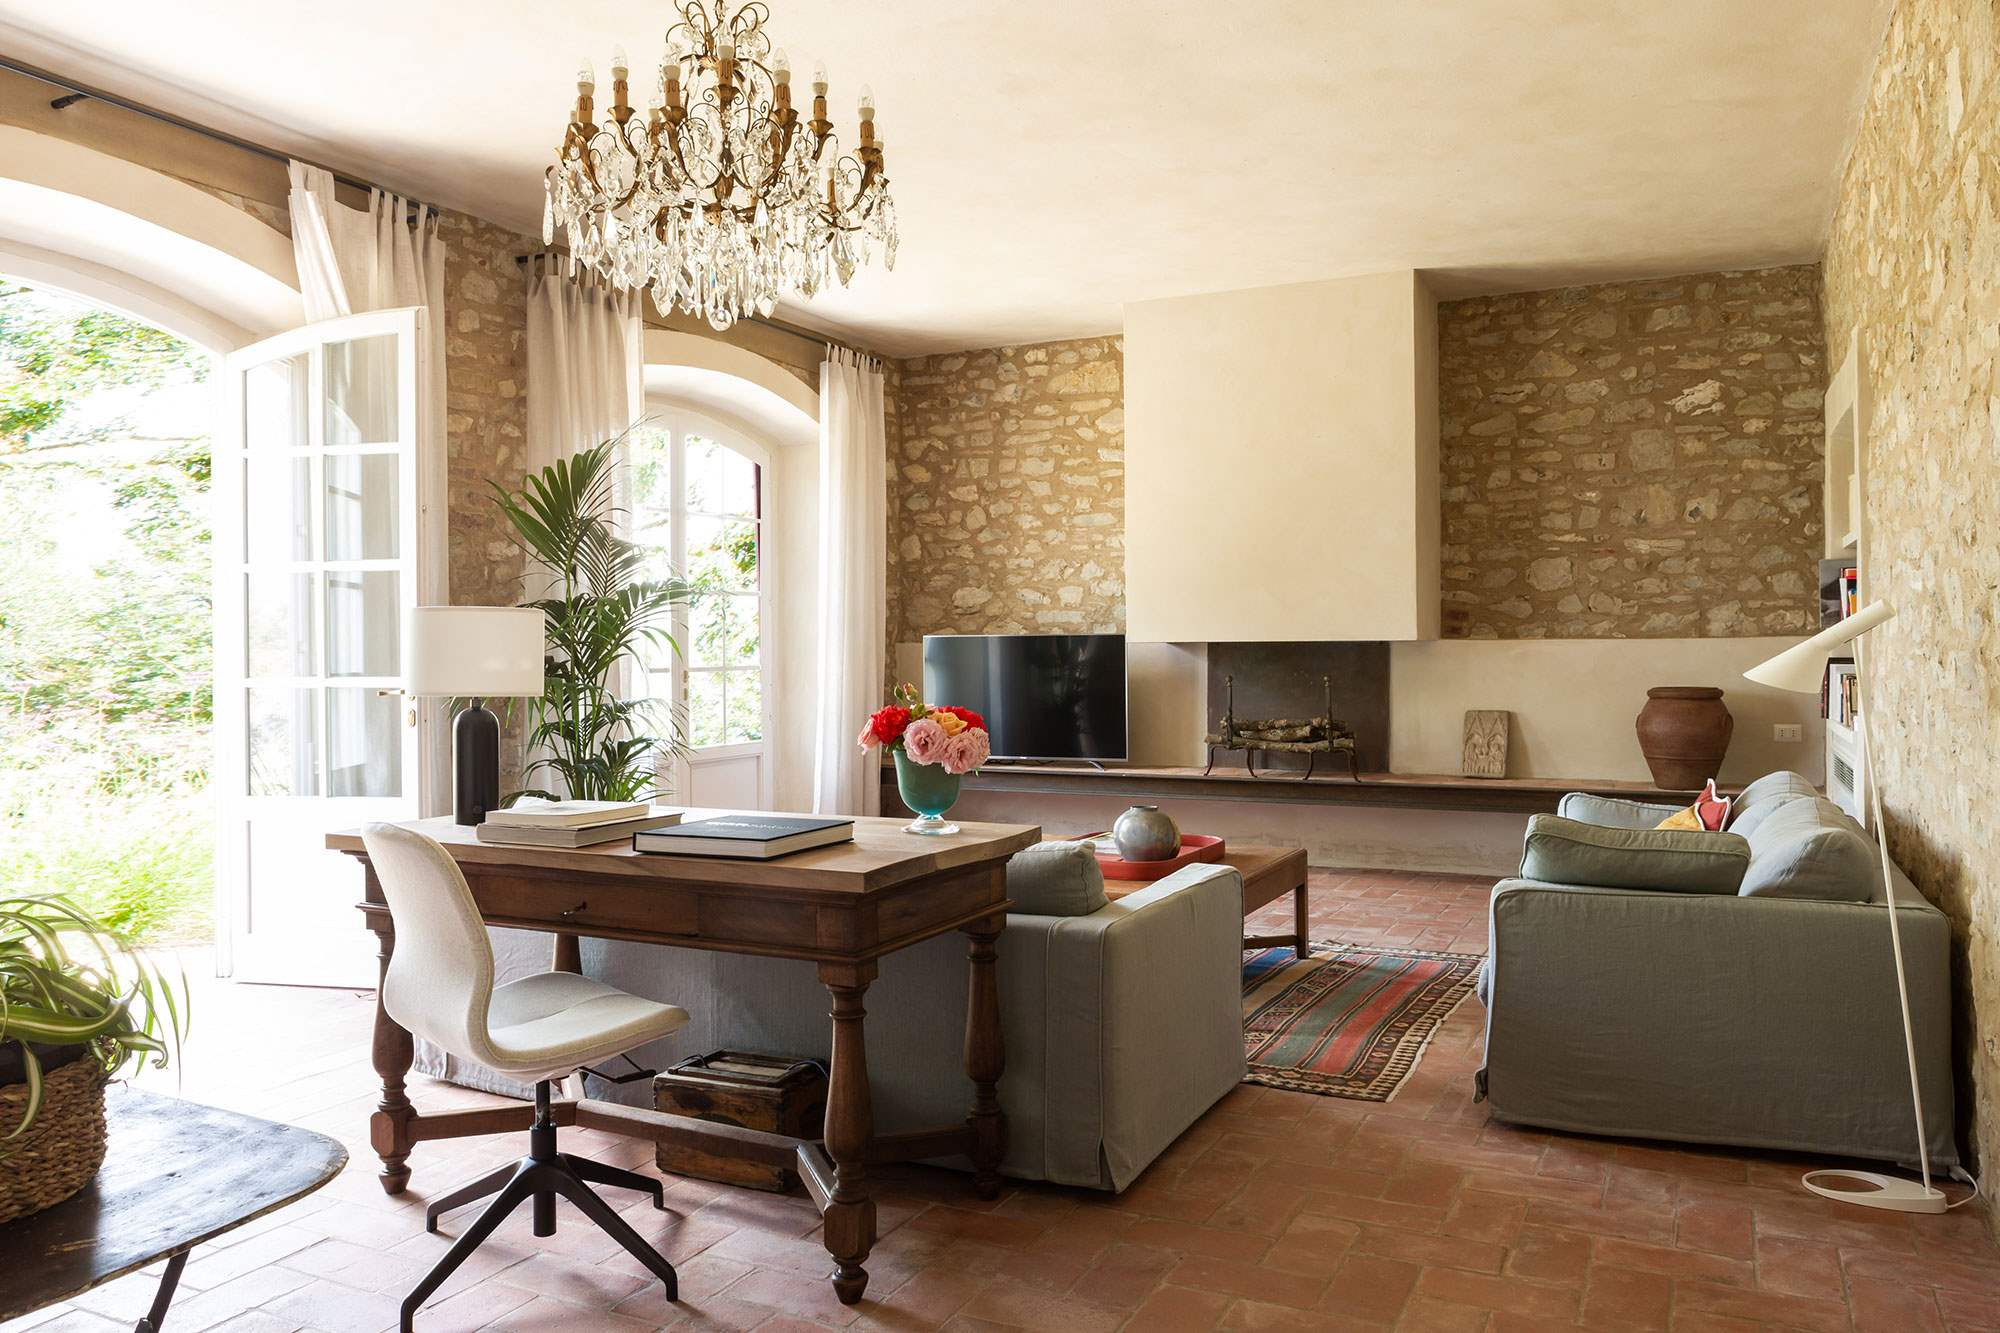 Villa Lecchi, 5 bedroom villa in Chianti & Countryside, Tuscany Photo #4